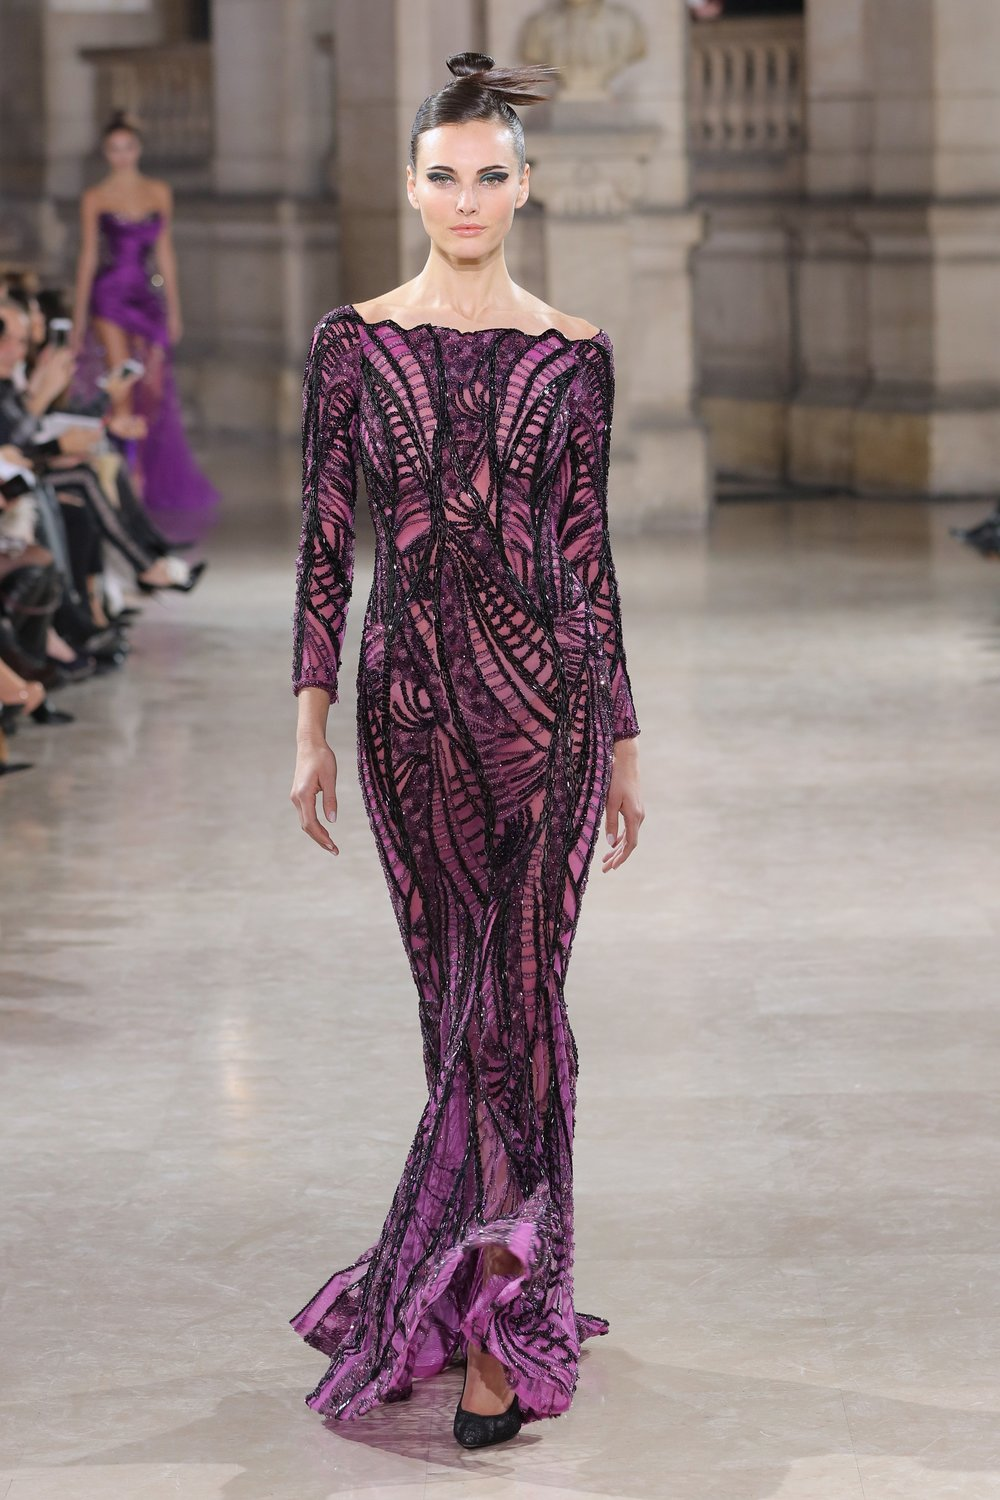 TONY_WARD_COUTURE_SS19_3.jpg